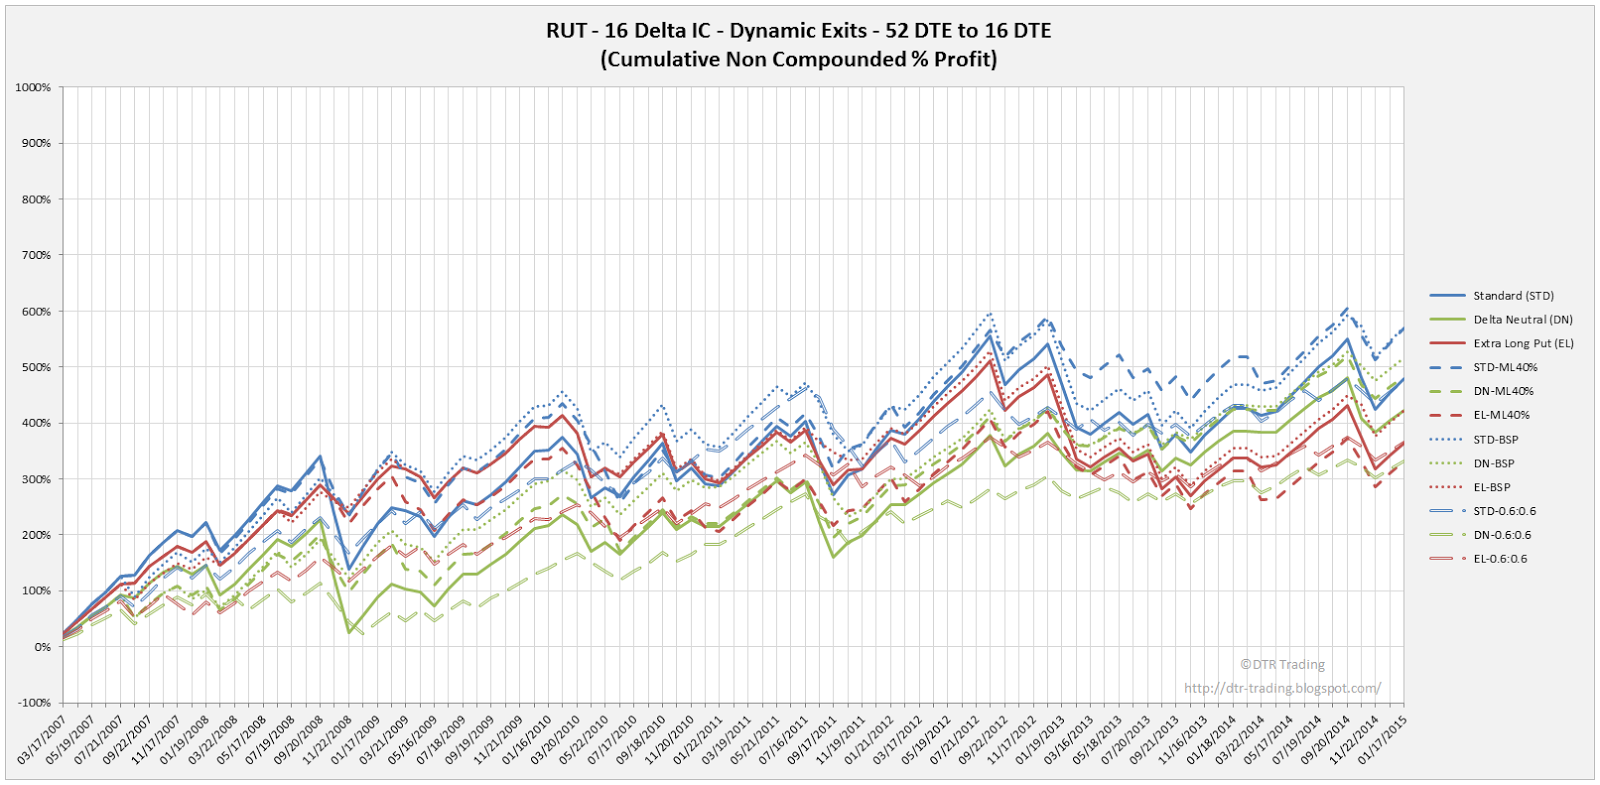 Iron Condor Dynamic Exit Equity Curves RUT 52 DTE 16 Delta All Versions